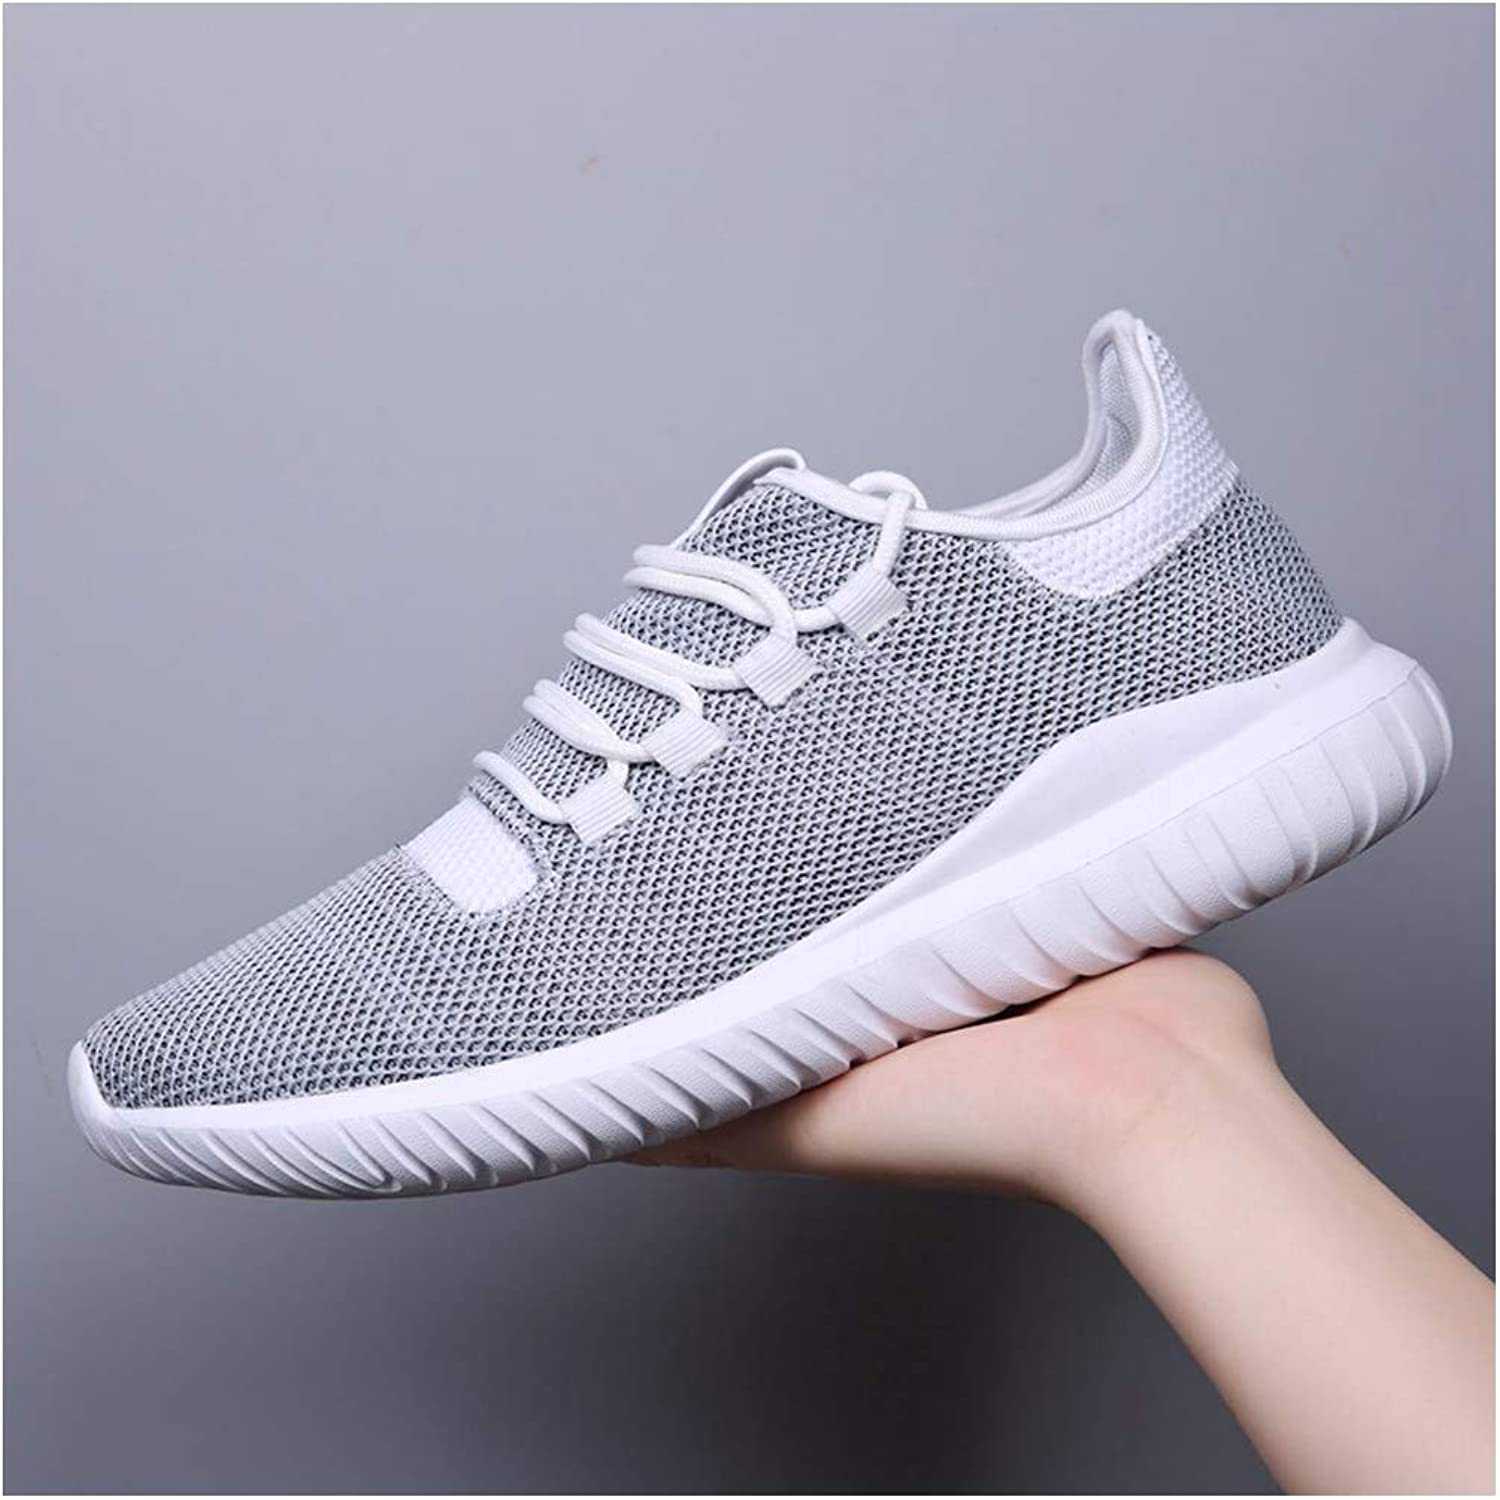 YAYADI shoes Men'S Sneakers Fashion Breathable Casual Men Trainers Jogging Fitness shoes Lightweight Yoga Riding Travel Outdoor Products